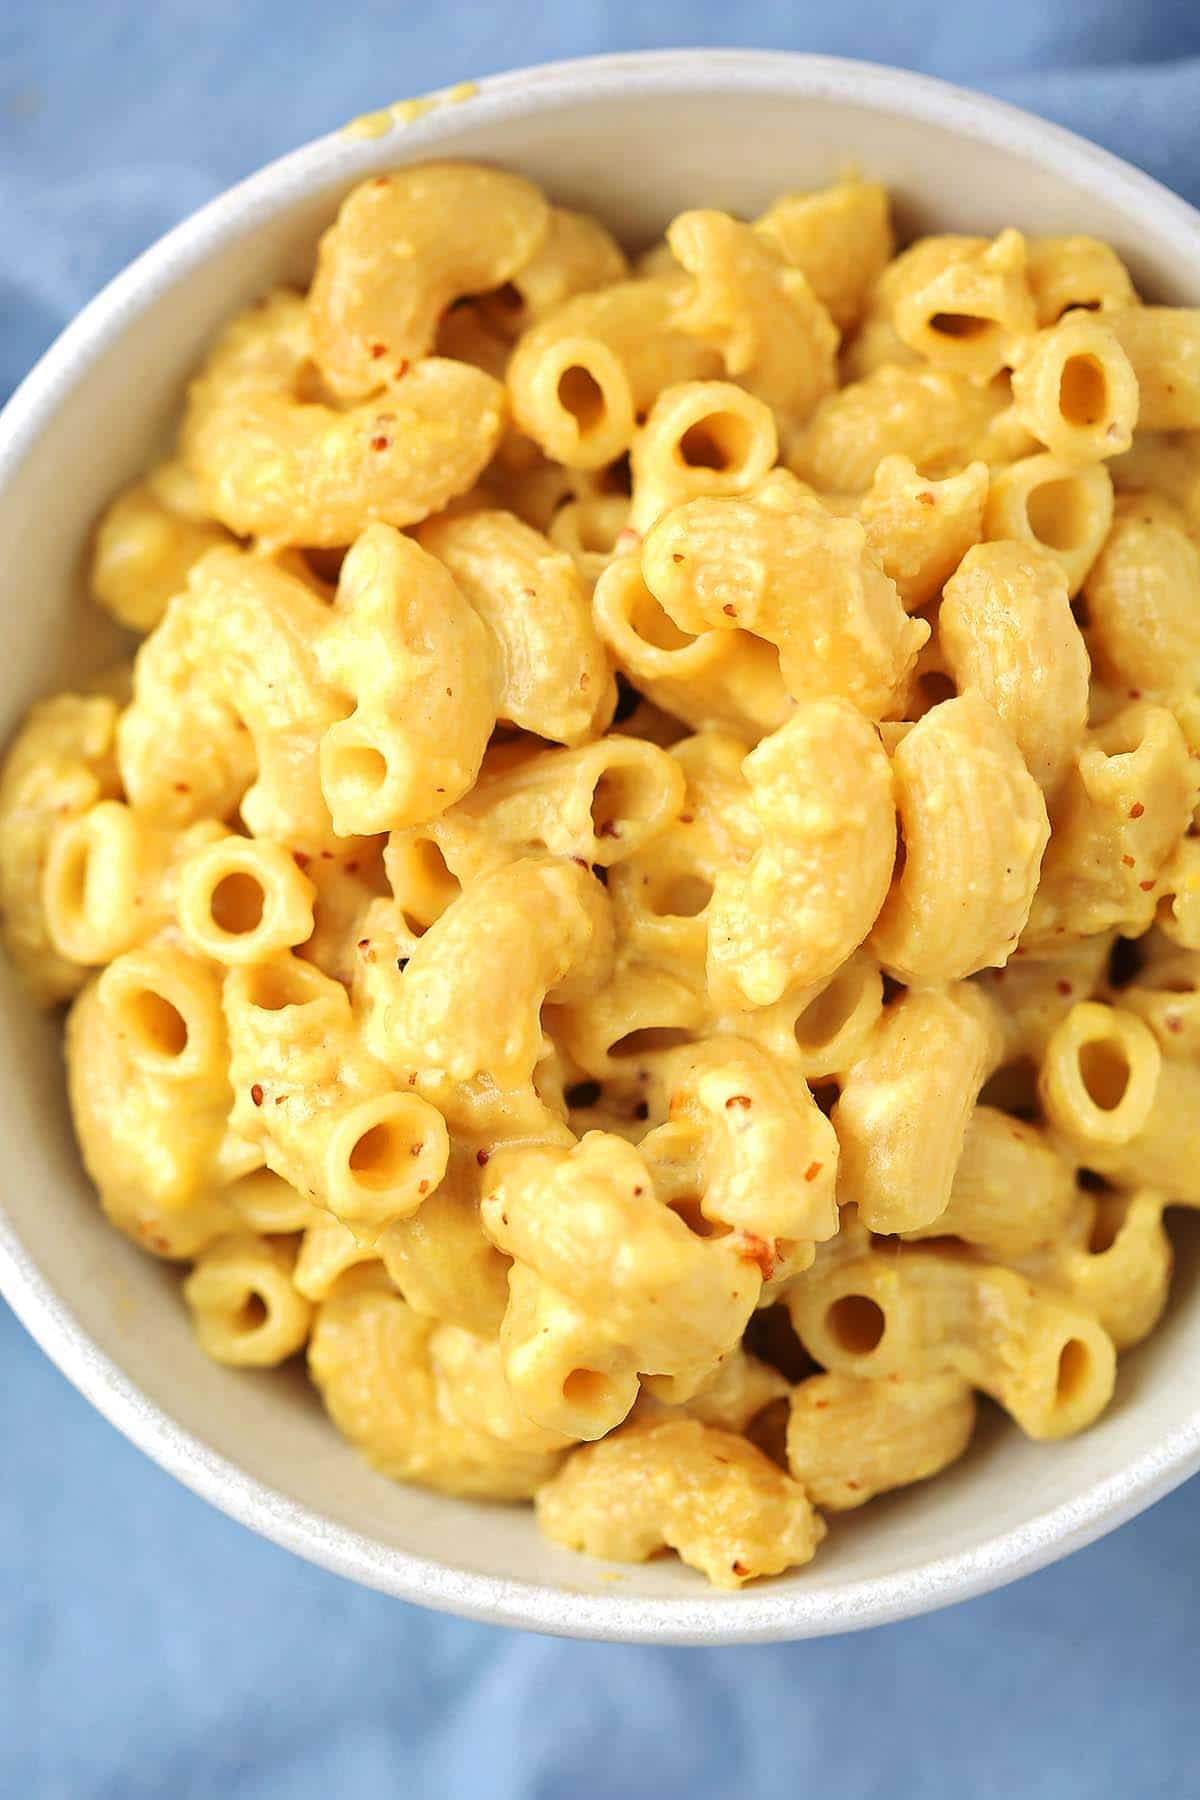 white bowl with creamy yellow mac and cheese